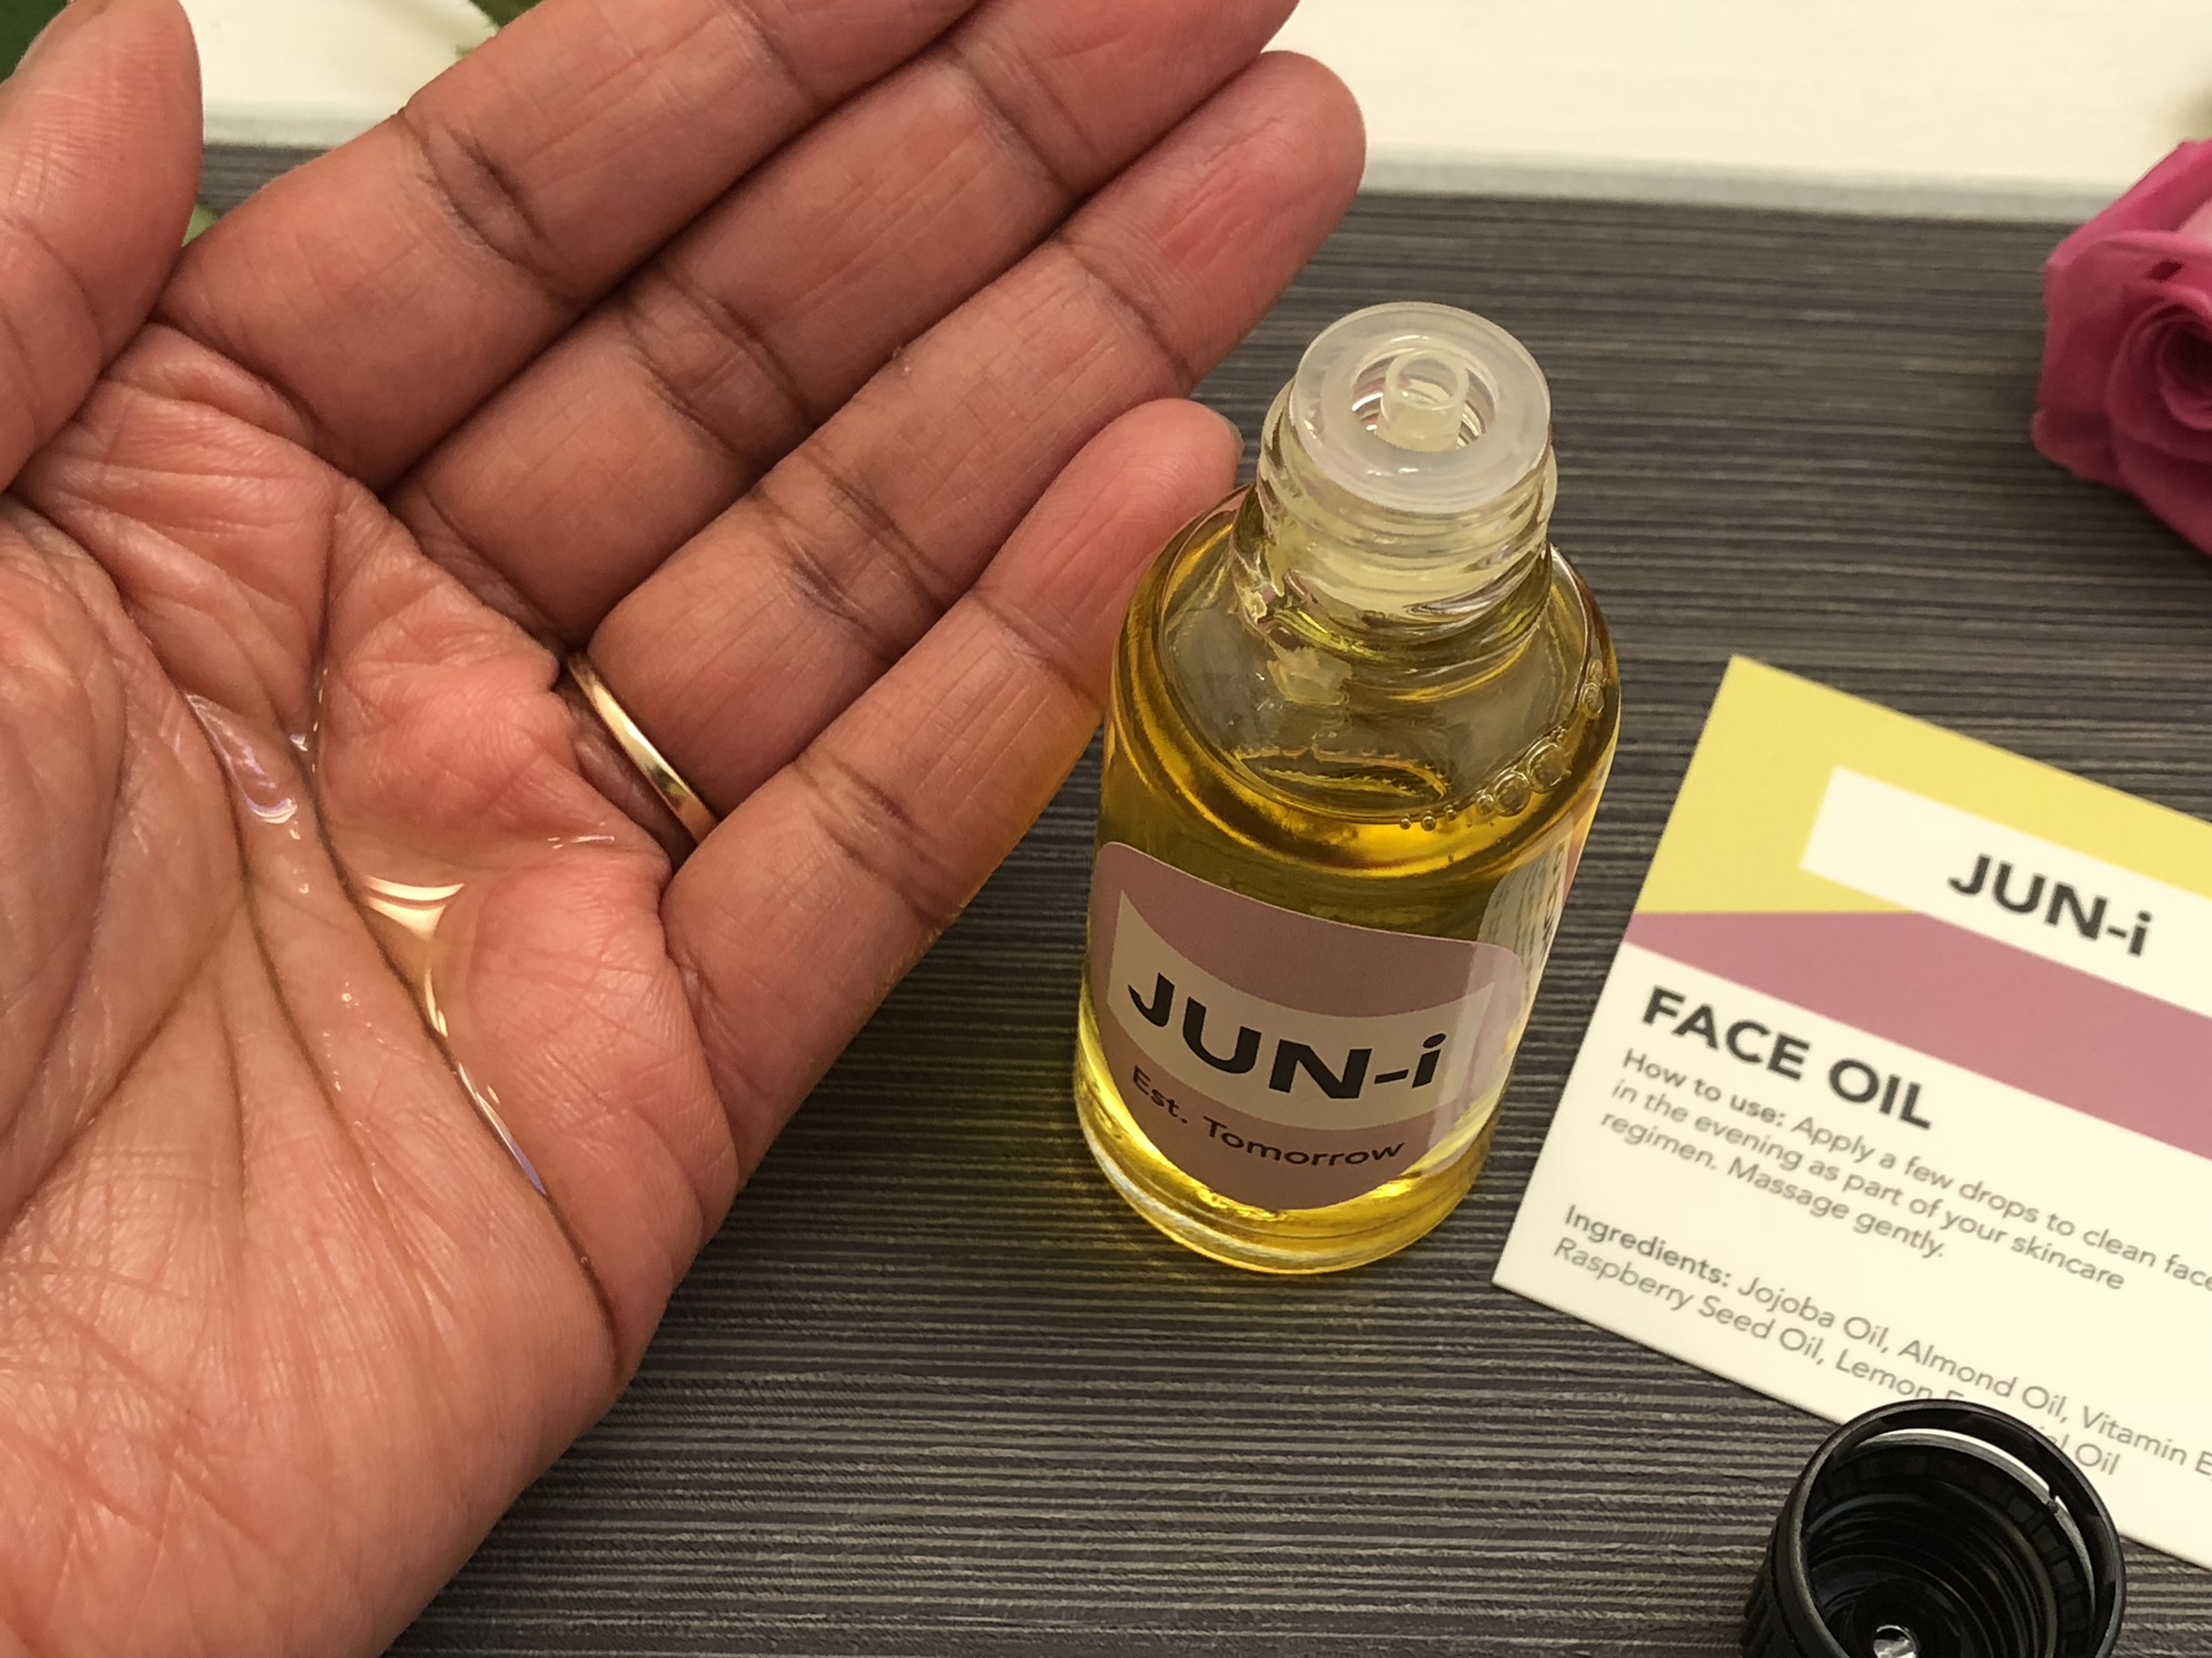 JUN-i The brand facial oil and cleanser